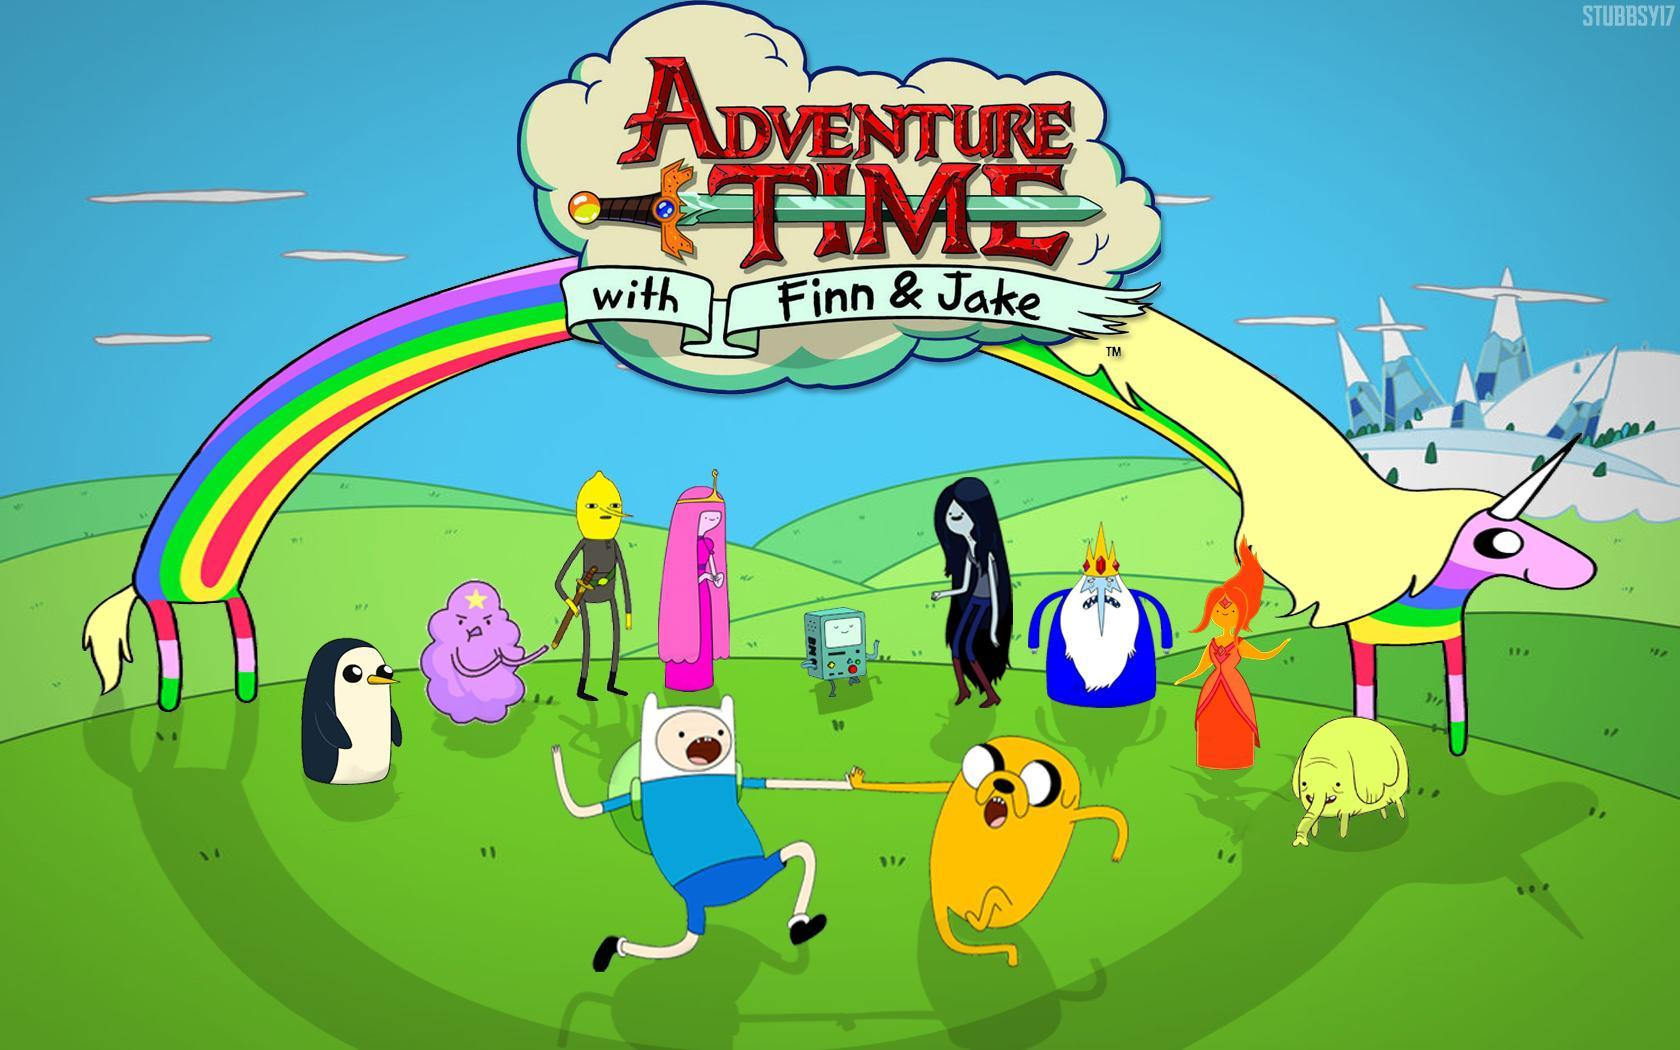 Which Character are you from Adventure Time?